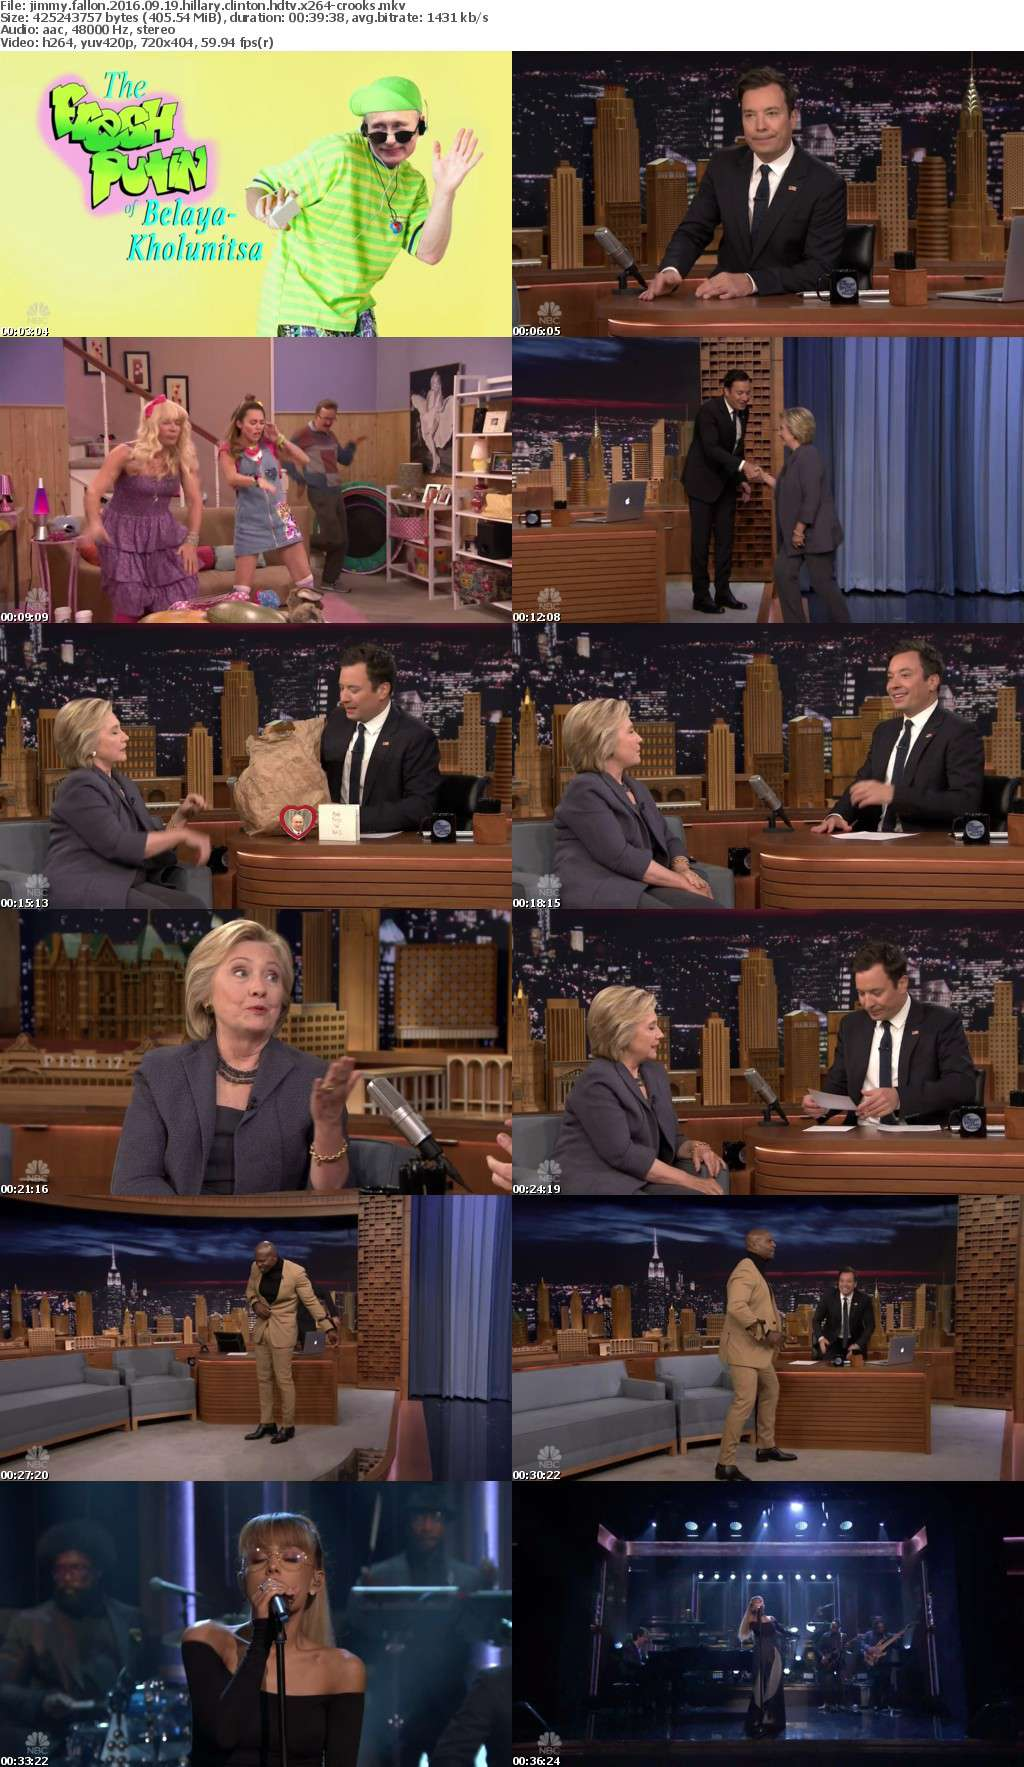 Jimmy Fallon 2016 09 19 Hillary Clinton HDTV x264-CROOKS